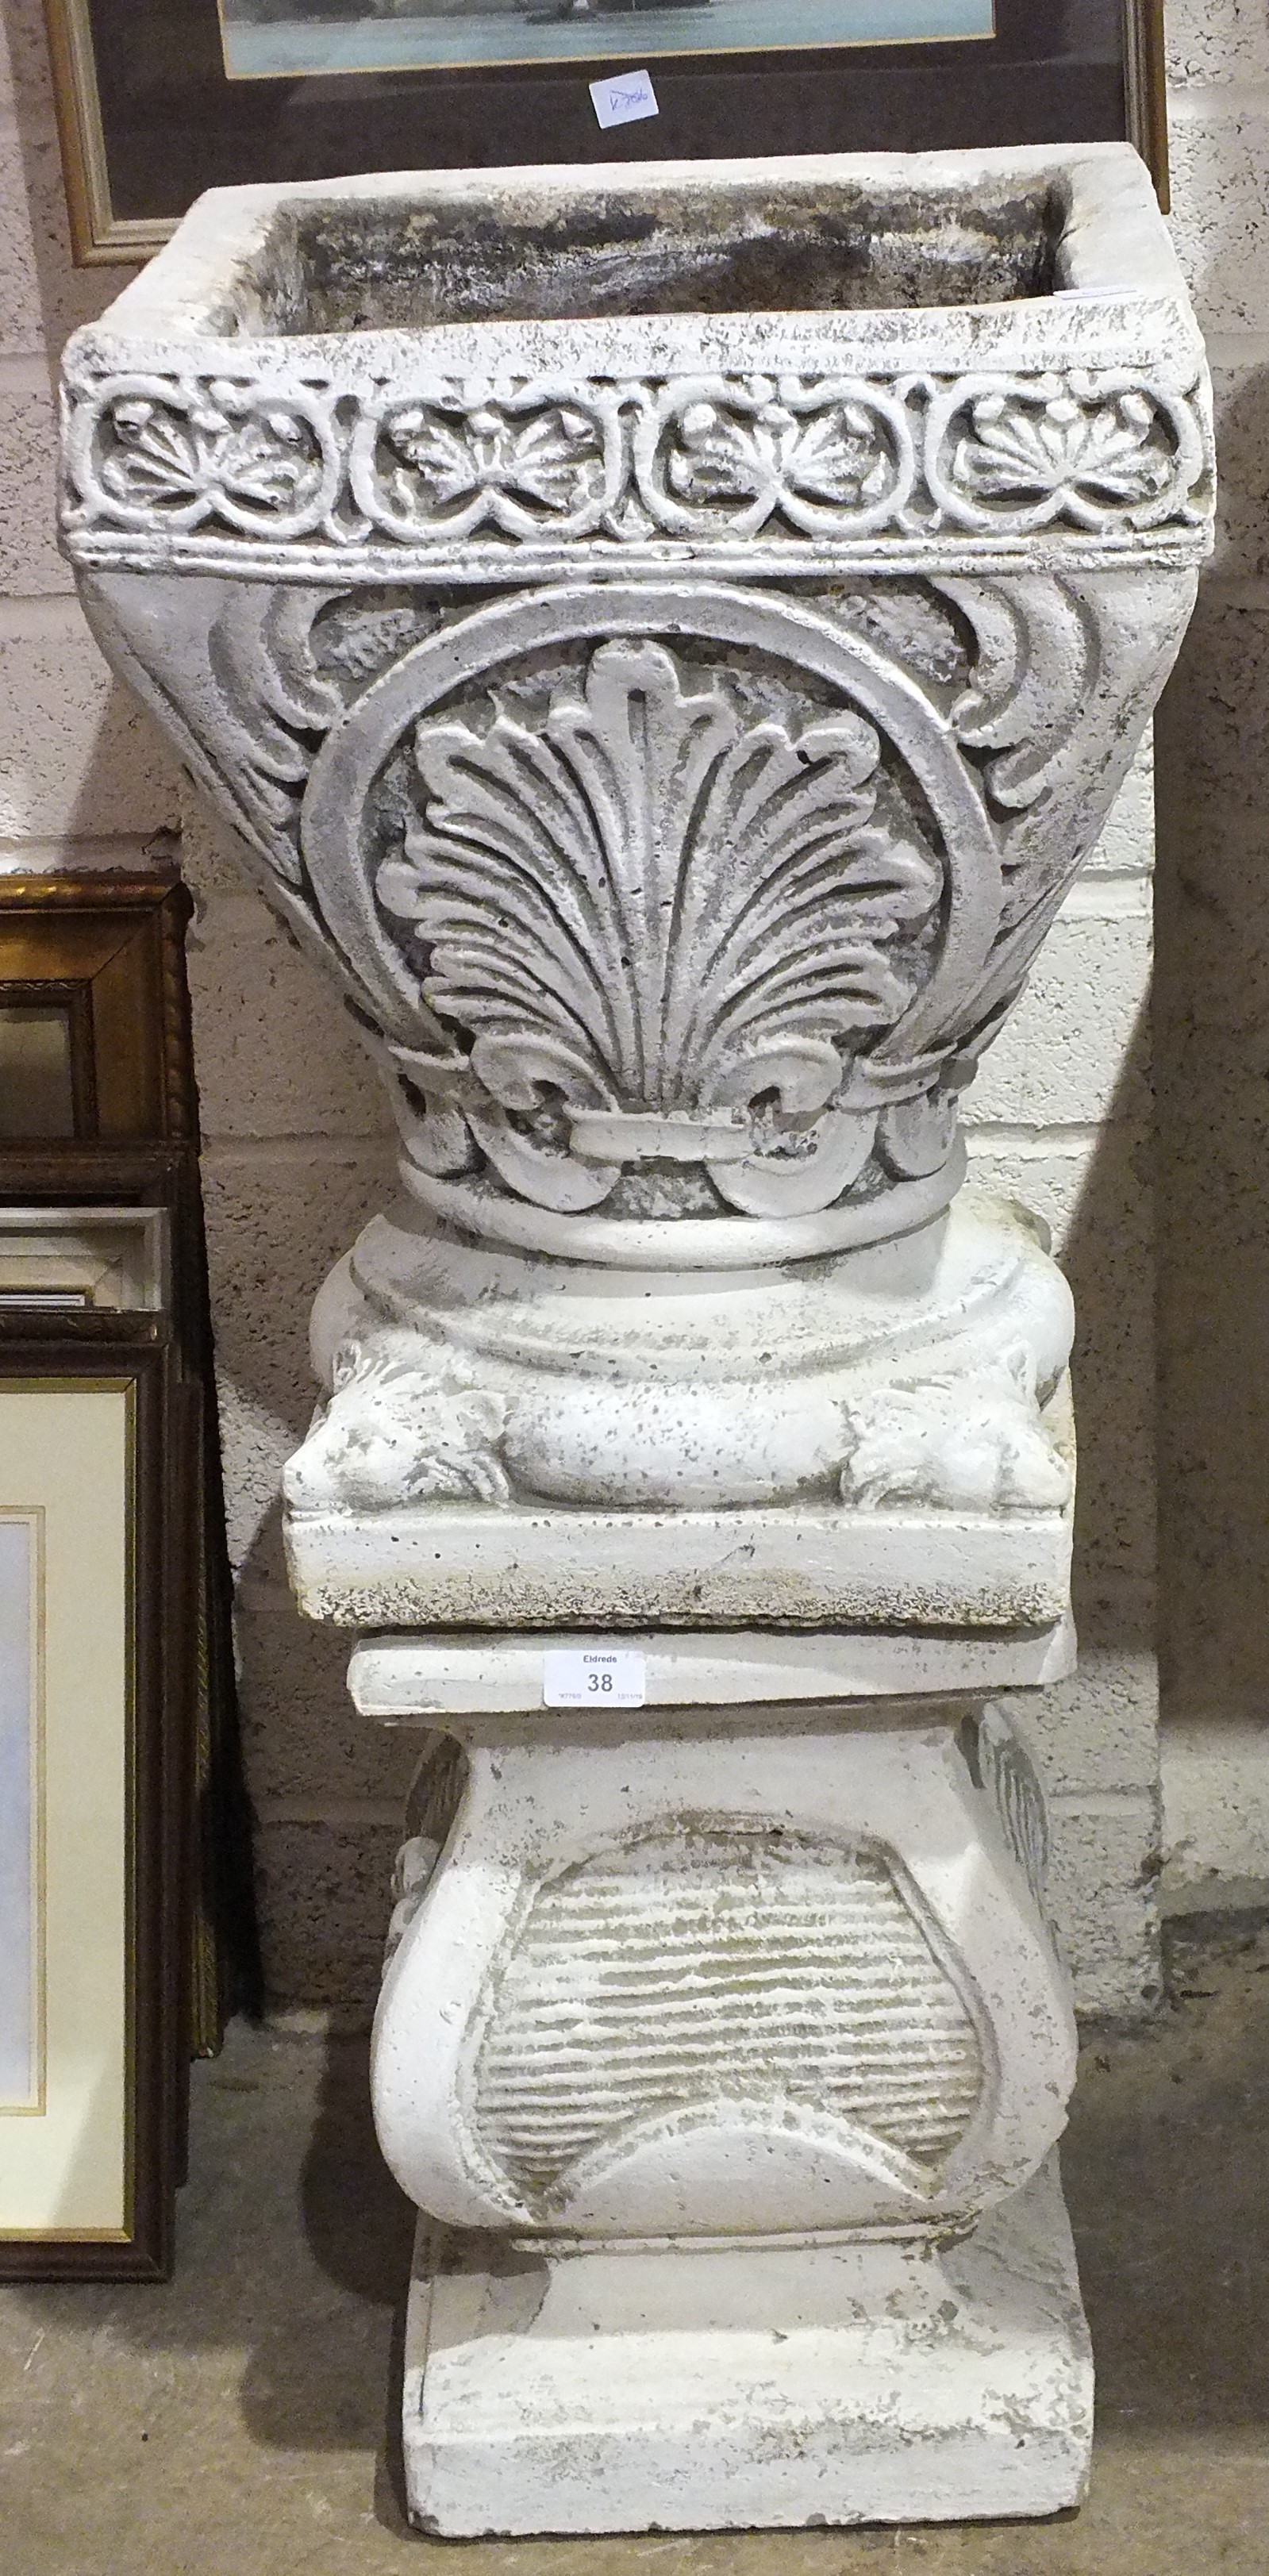 Lot 38 - A modern cast concrete planter on stand, 90cm high.